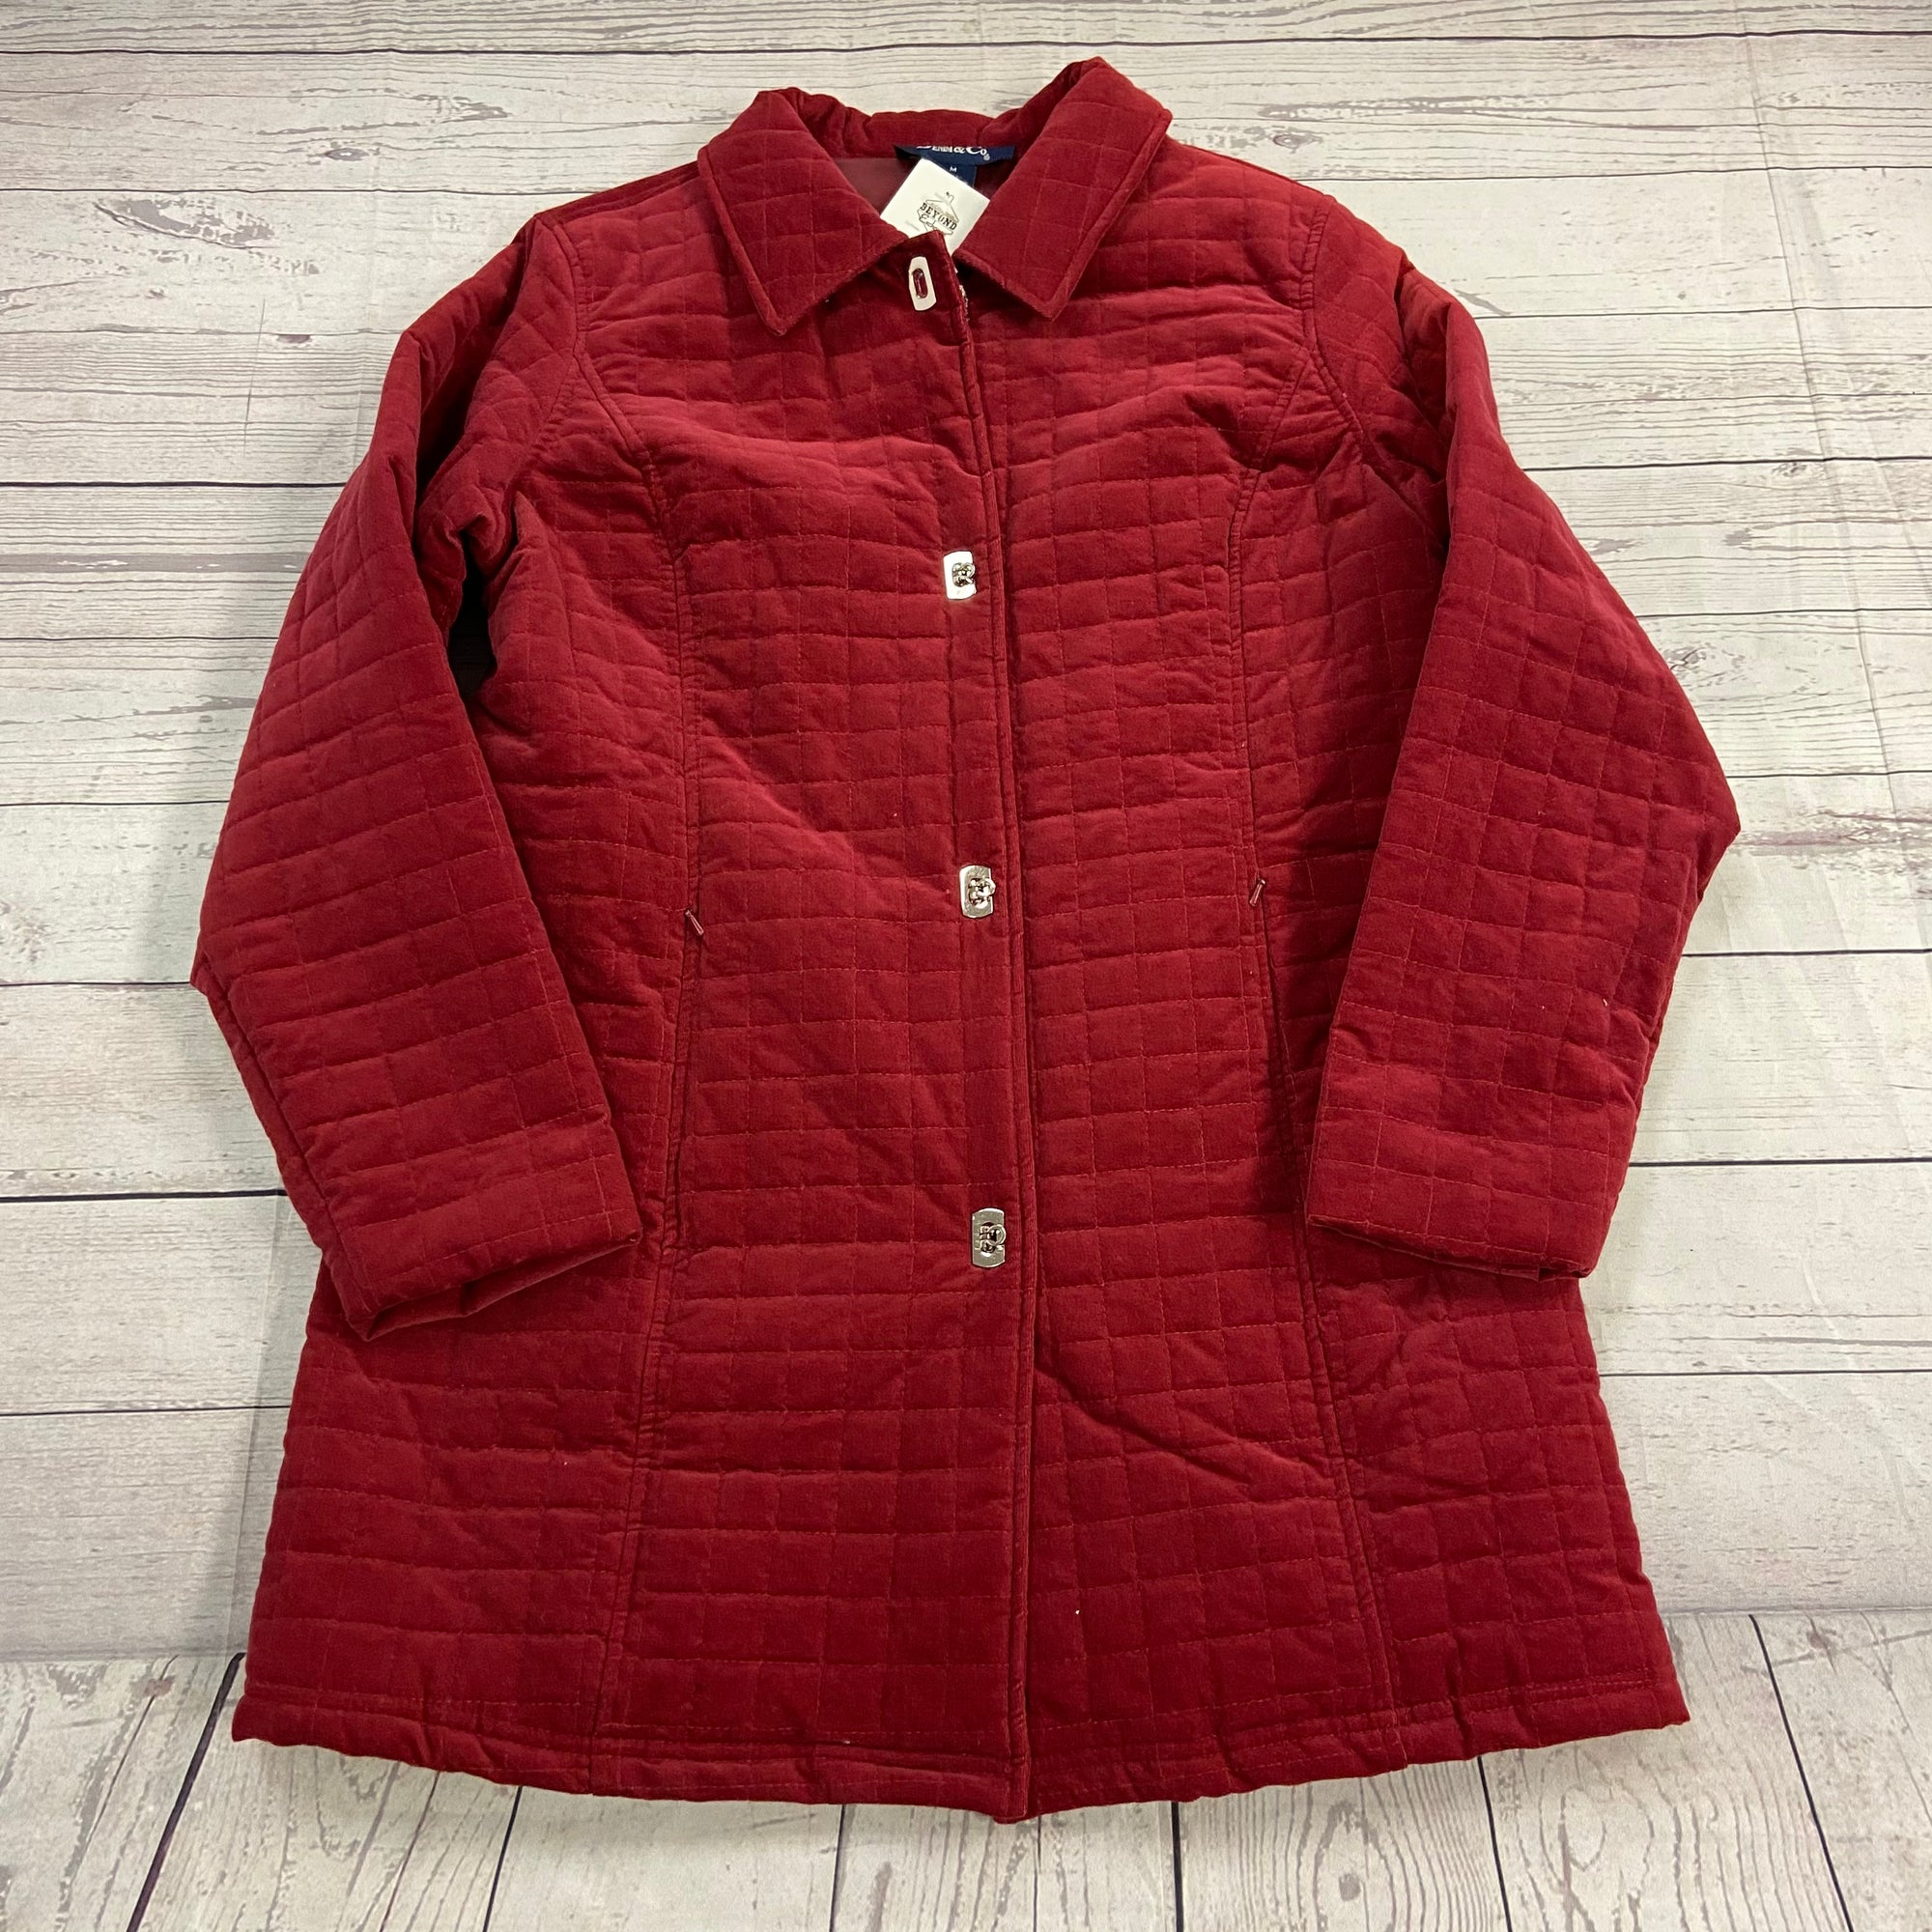 Denim Co Red Quilted Velvet Toggle Close Jacket Women's Size Medium NEW QVC